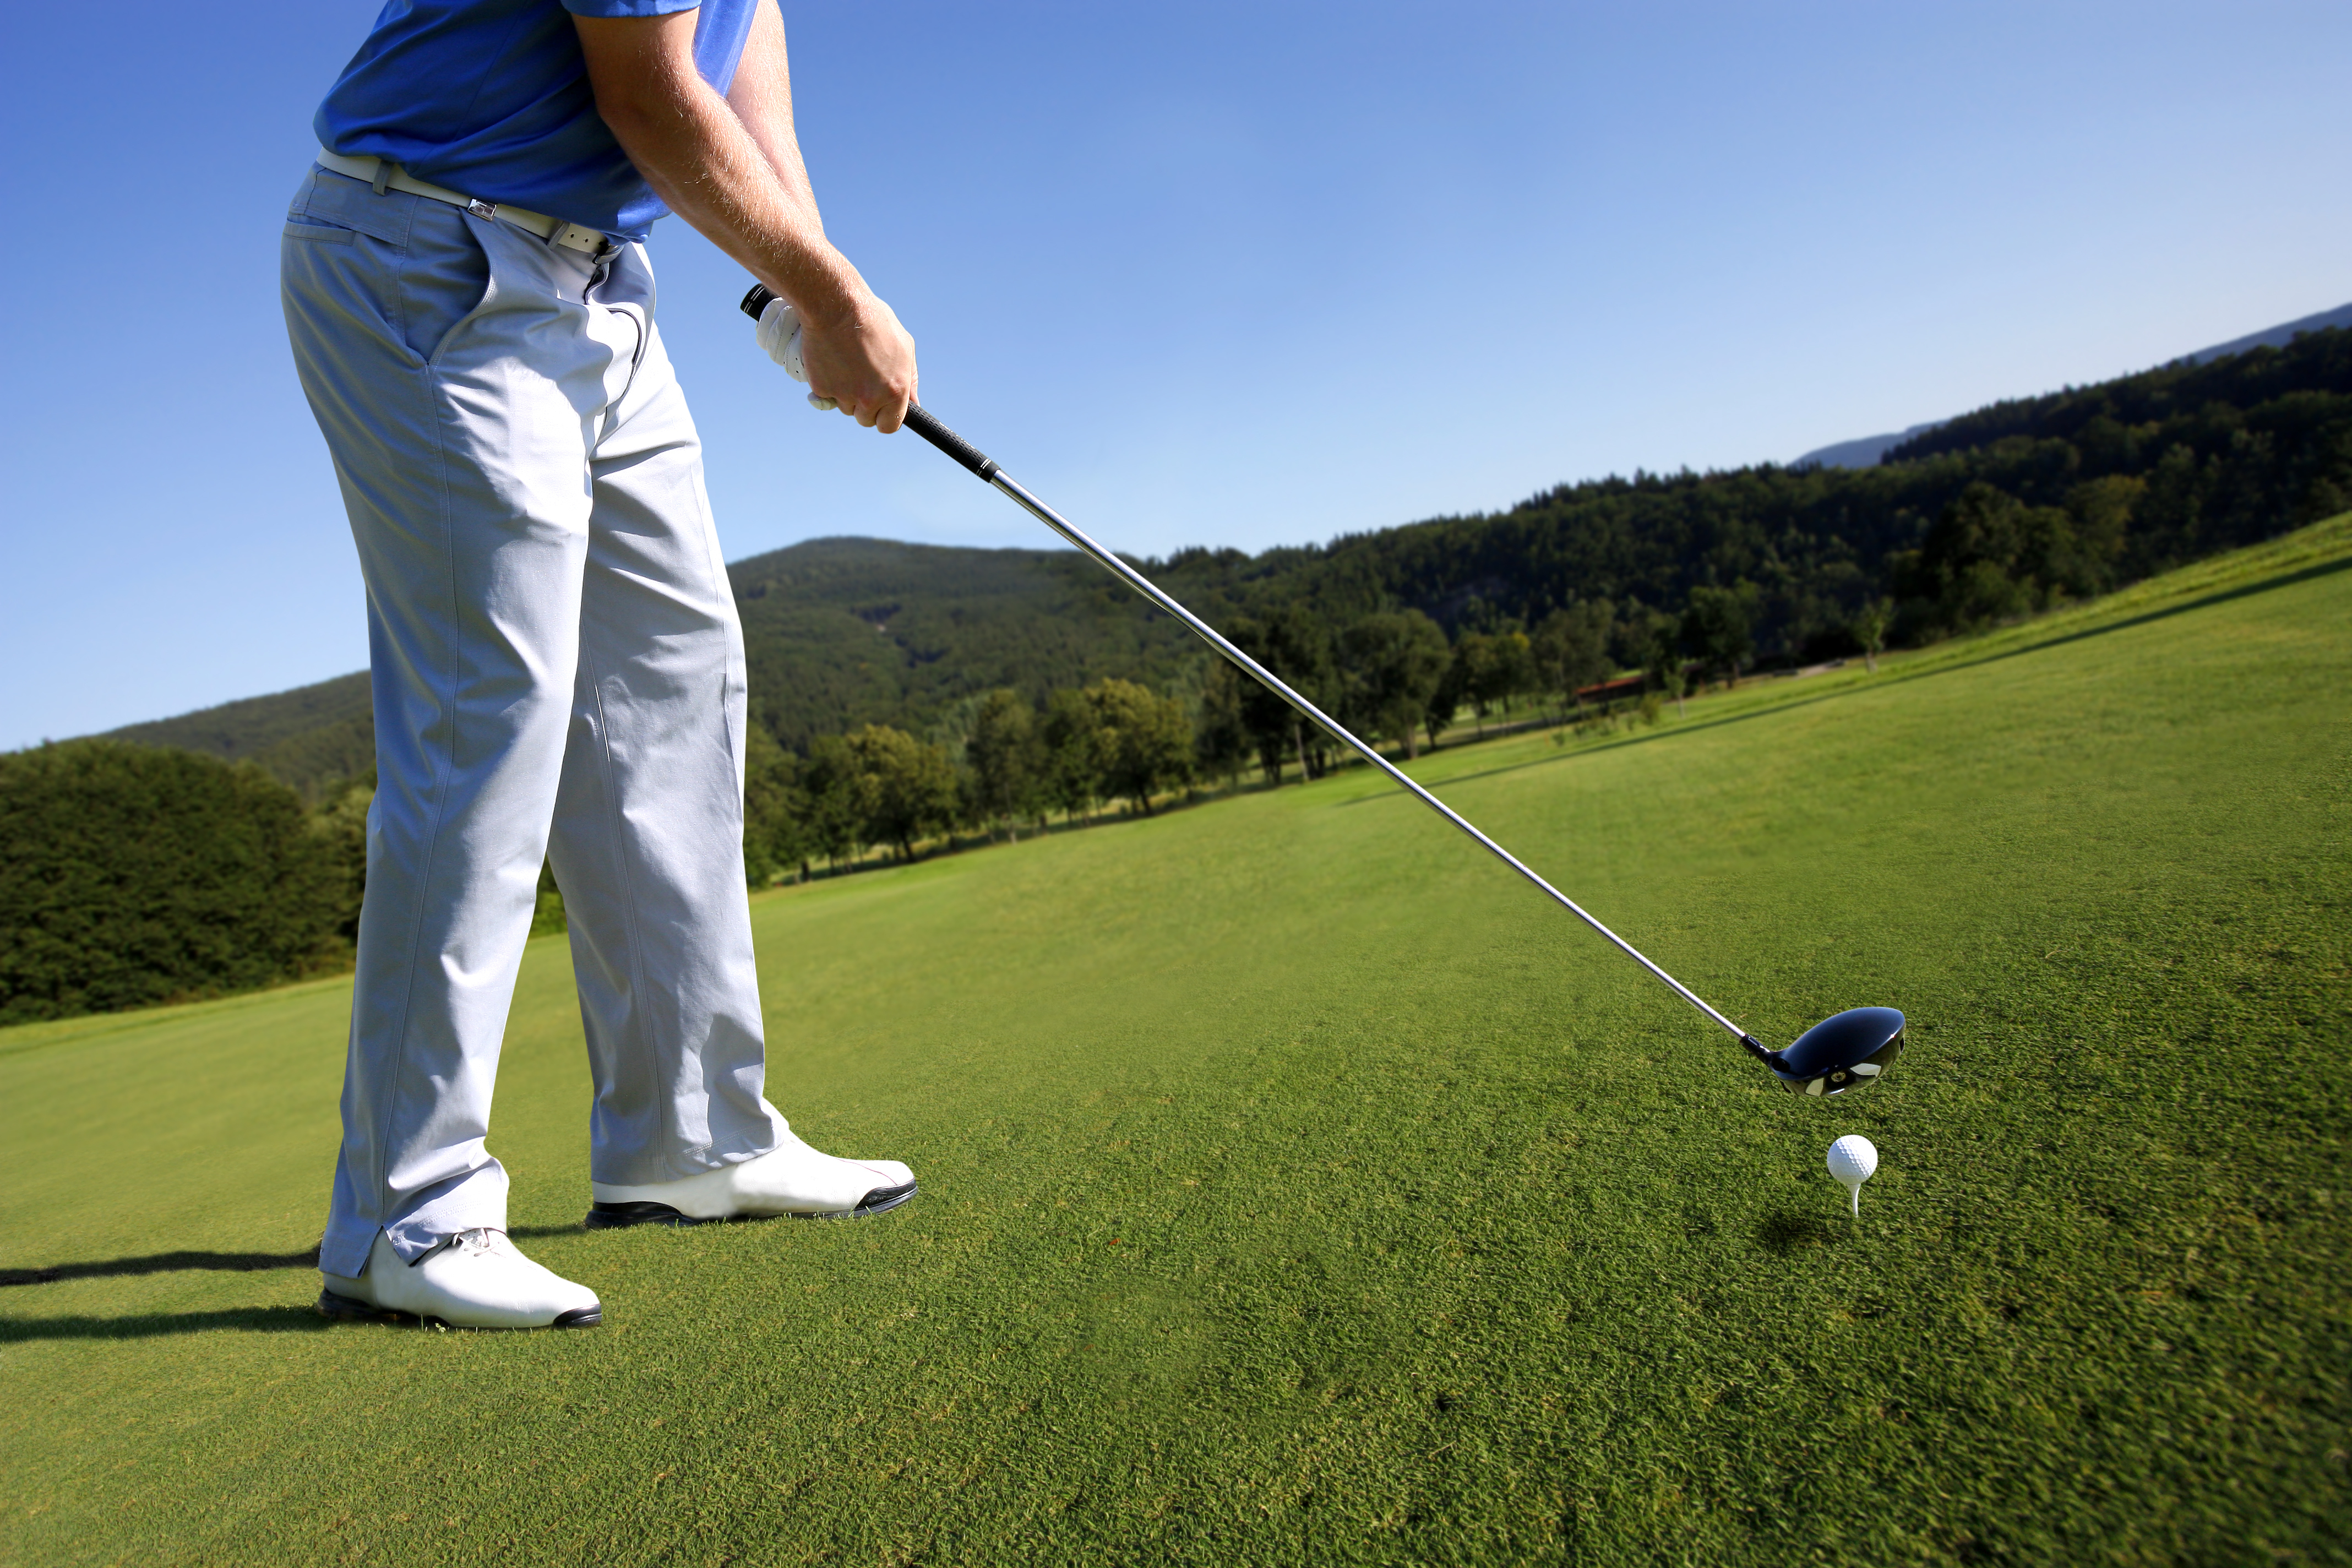 5 ways to hit a golf ball further in 2015